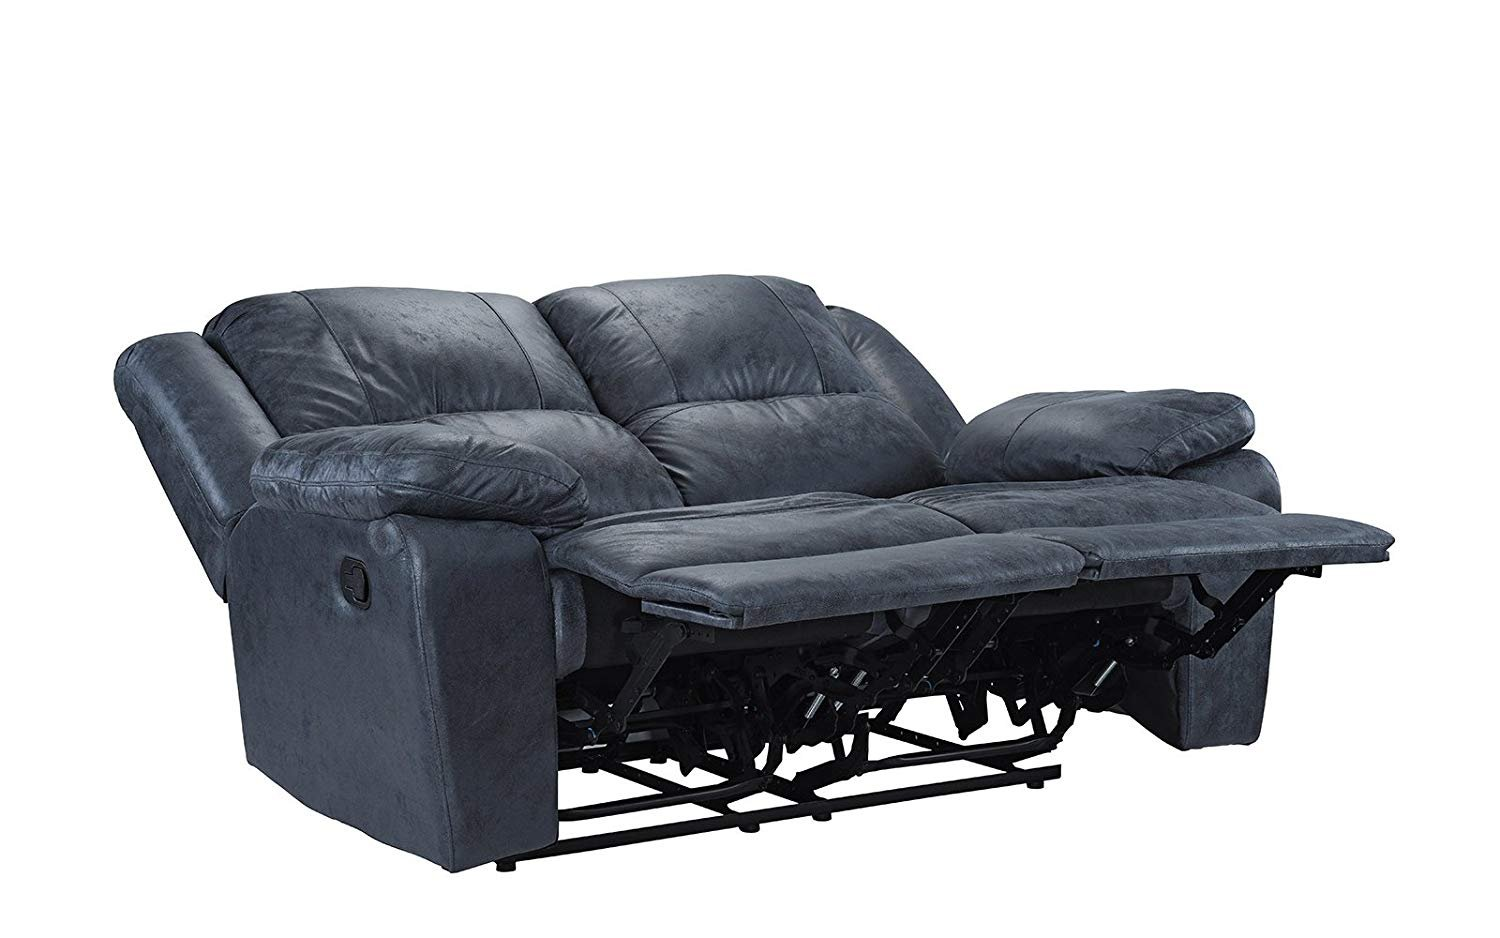 Classic Oversize 56 Inch Air Leather Recliner Living Room Loveseat